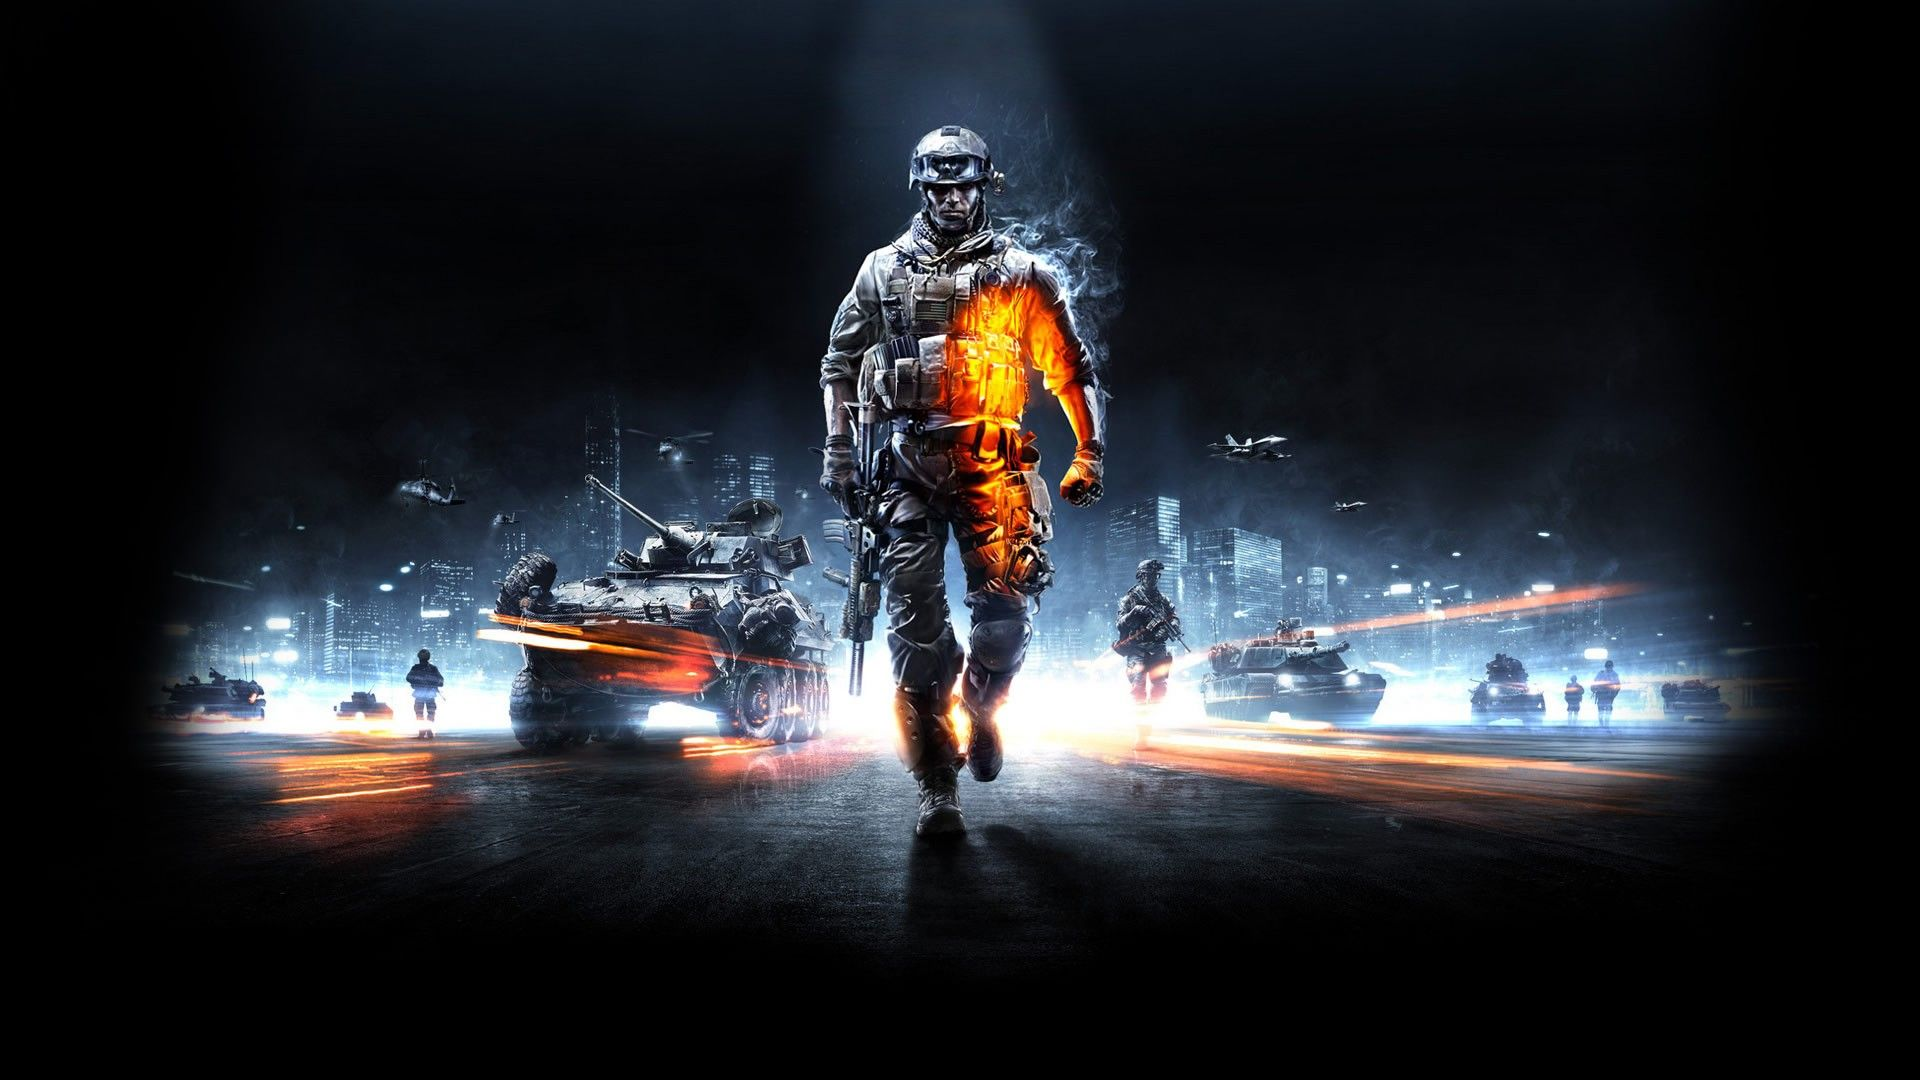 Cool Gamer Pics games cool unnamed 1920x1080 px 14740